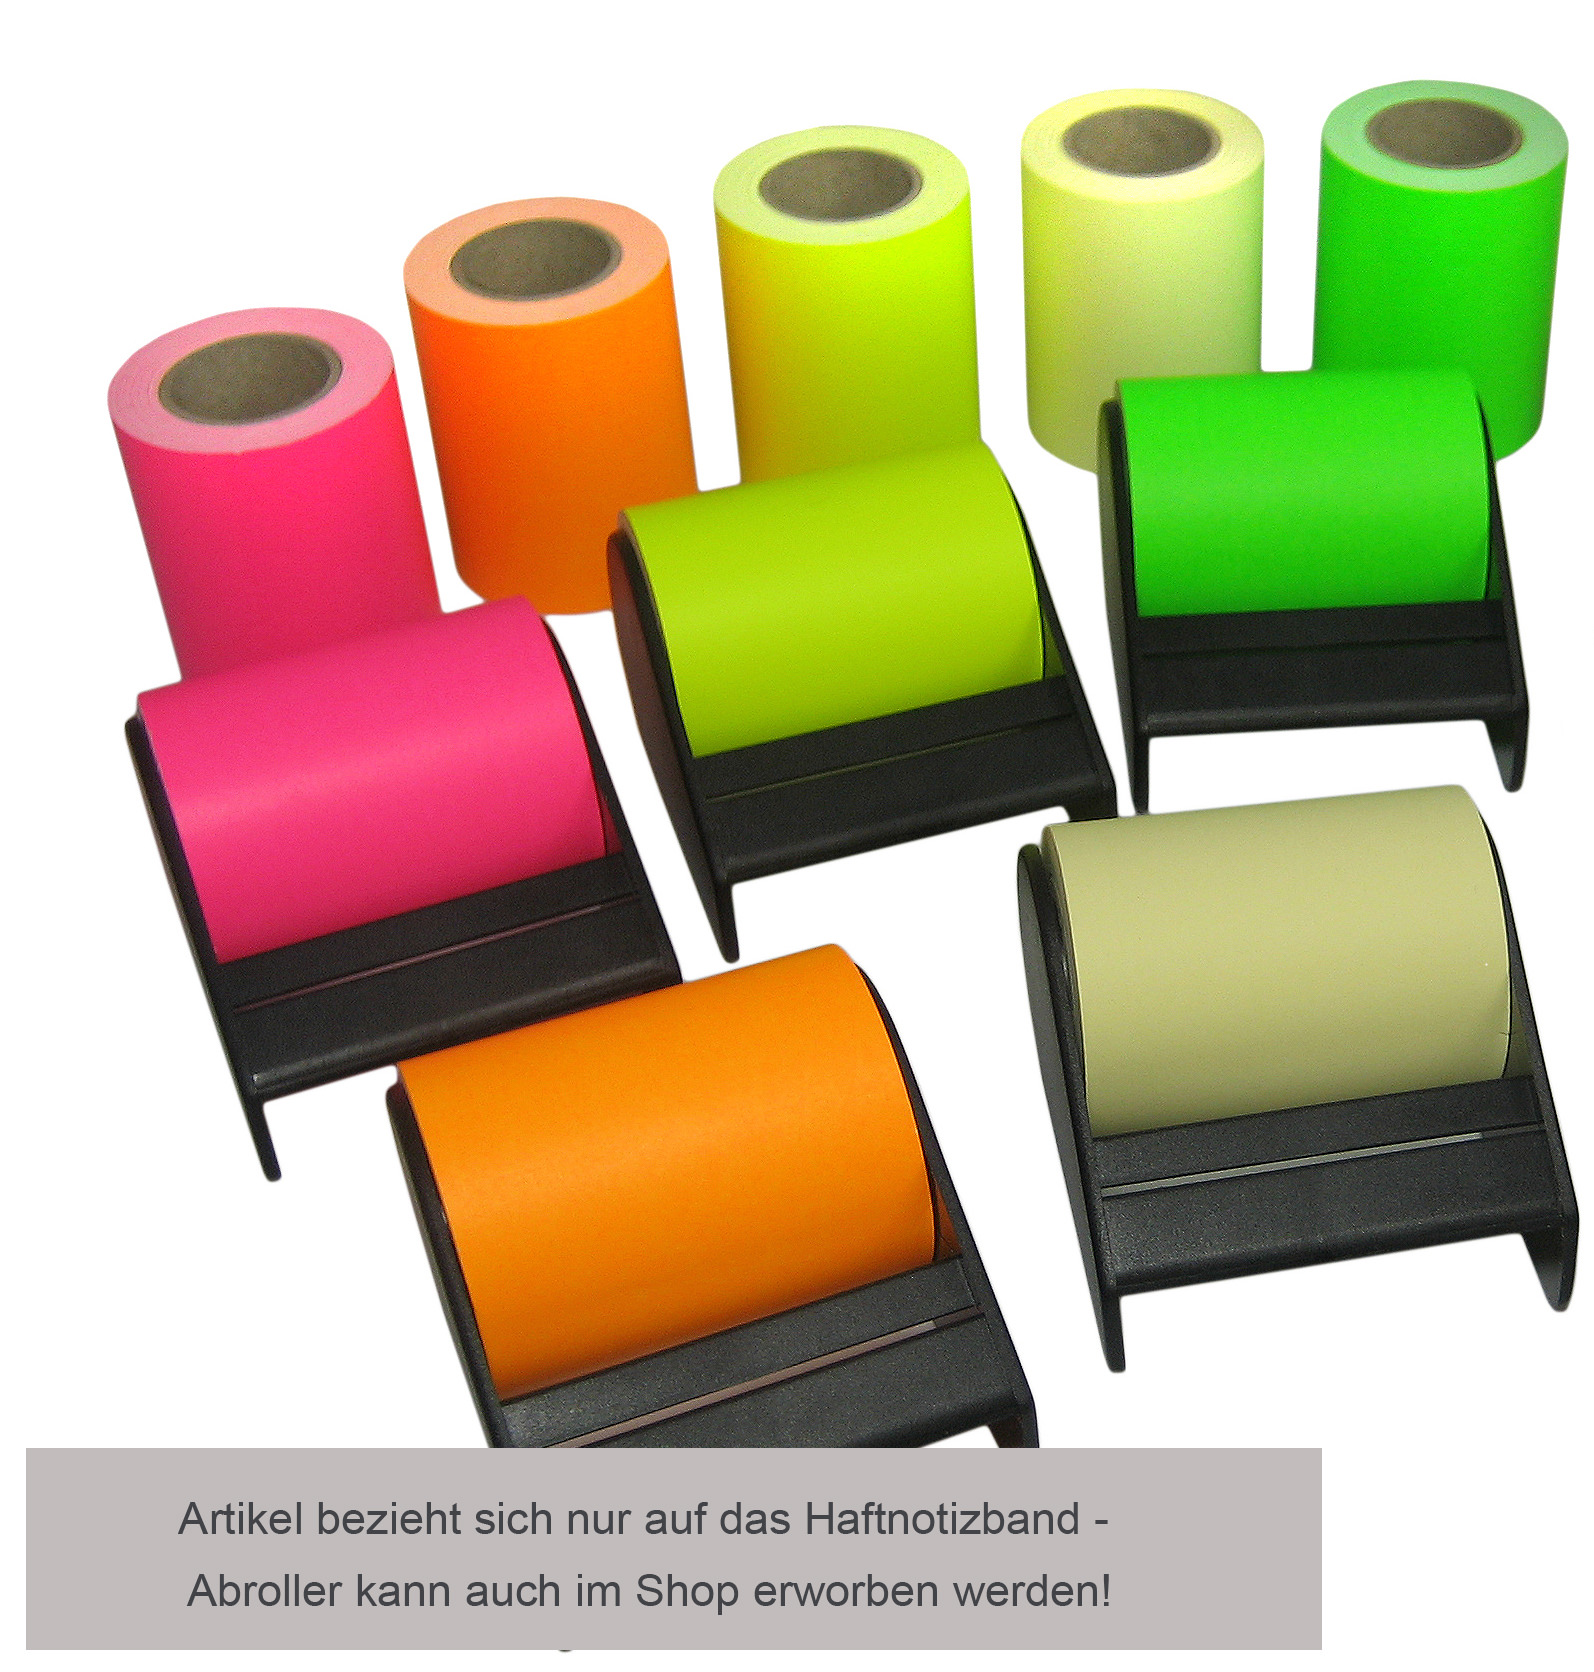 roll 39 n 39 write neon haftnotizband klebeband 10m 60mm postit neuheiten fixon. Black Bedroom Furniture Sets. Home Design Ideas